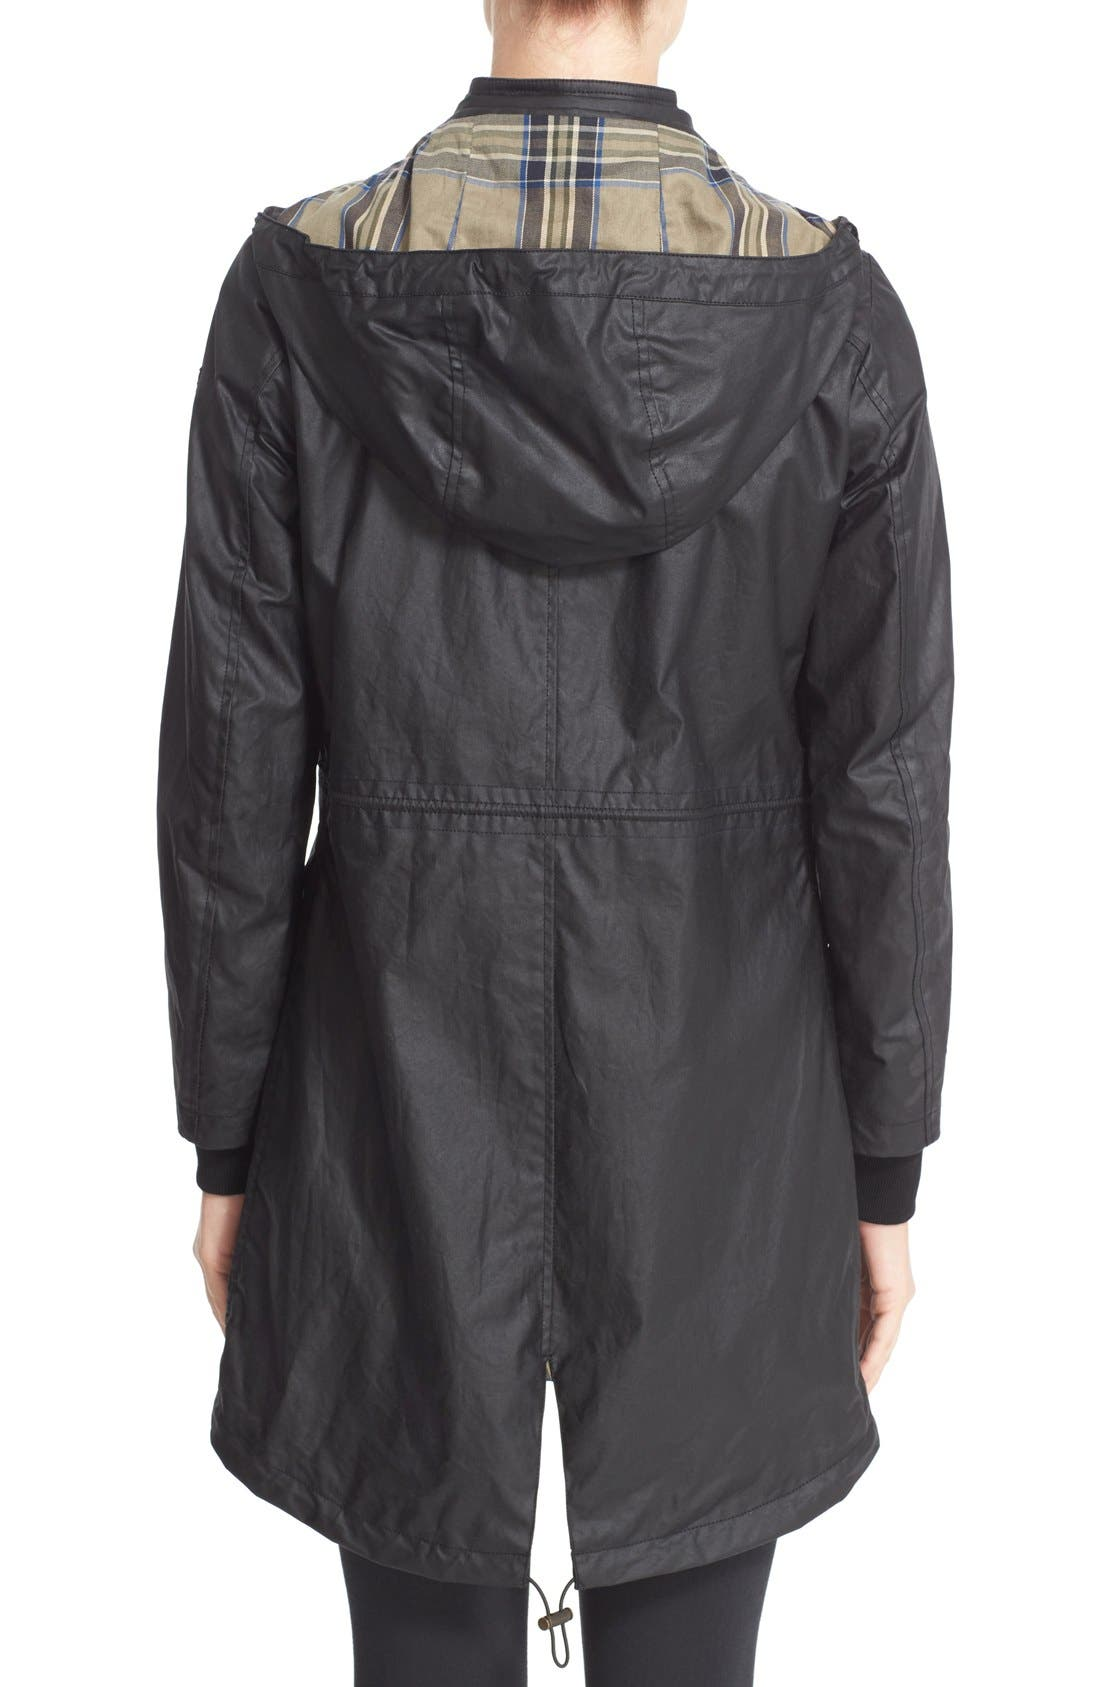 Wembury Waxed Cotton Jacket,                             Alternate thumbnail 2, color,                             001